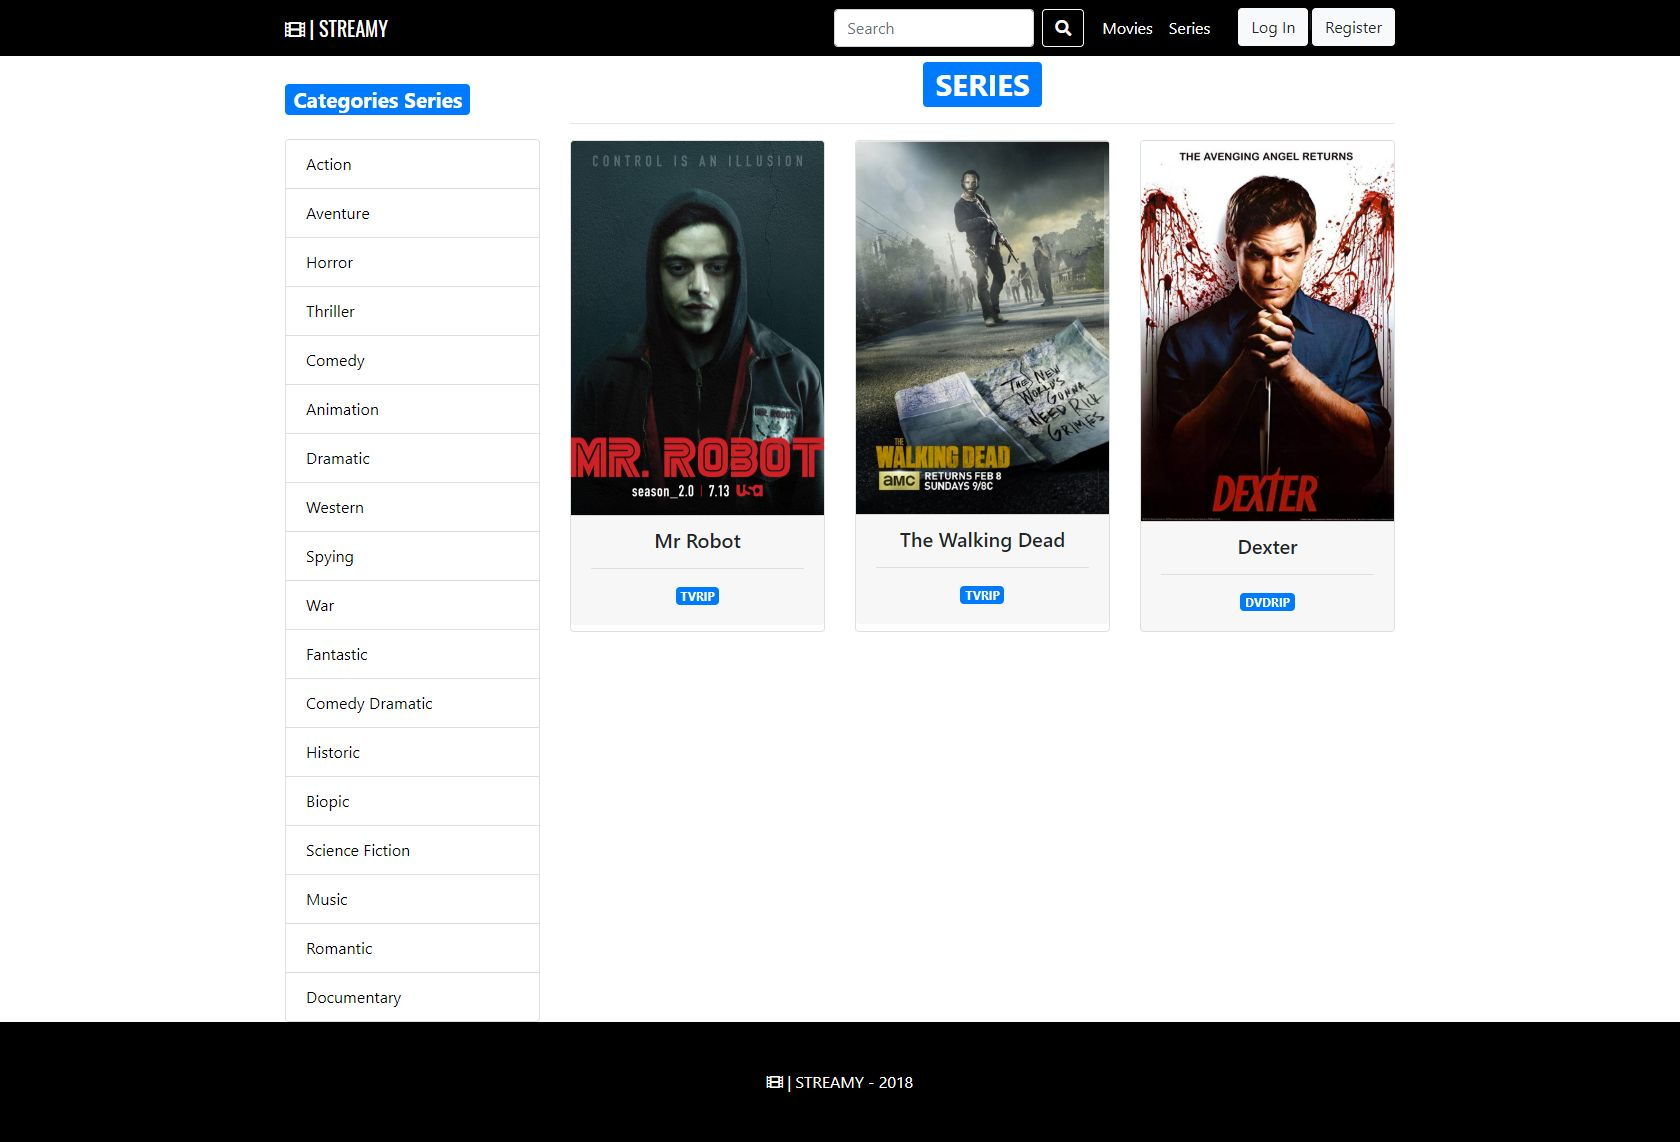 Streamy - Movies And Series Streaming Platform PHP Screenshot 24